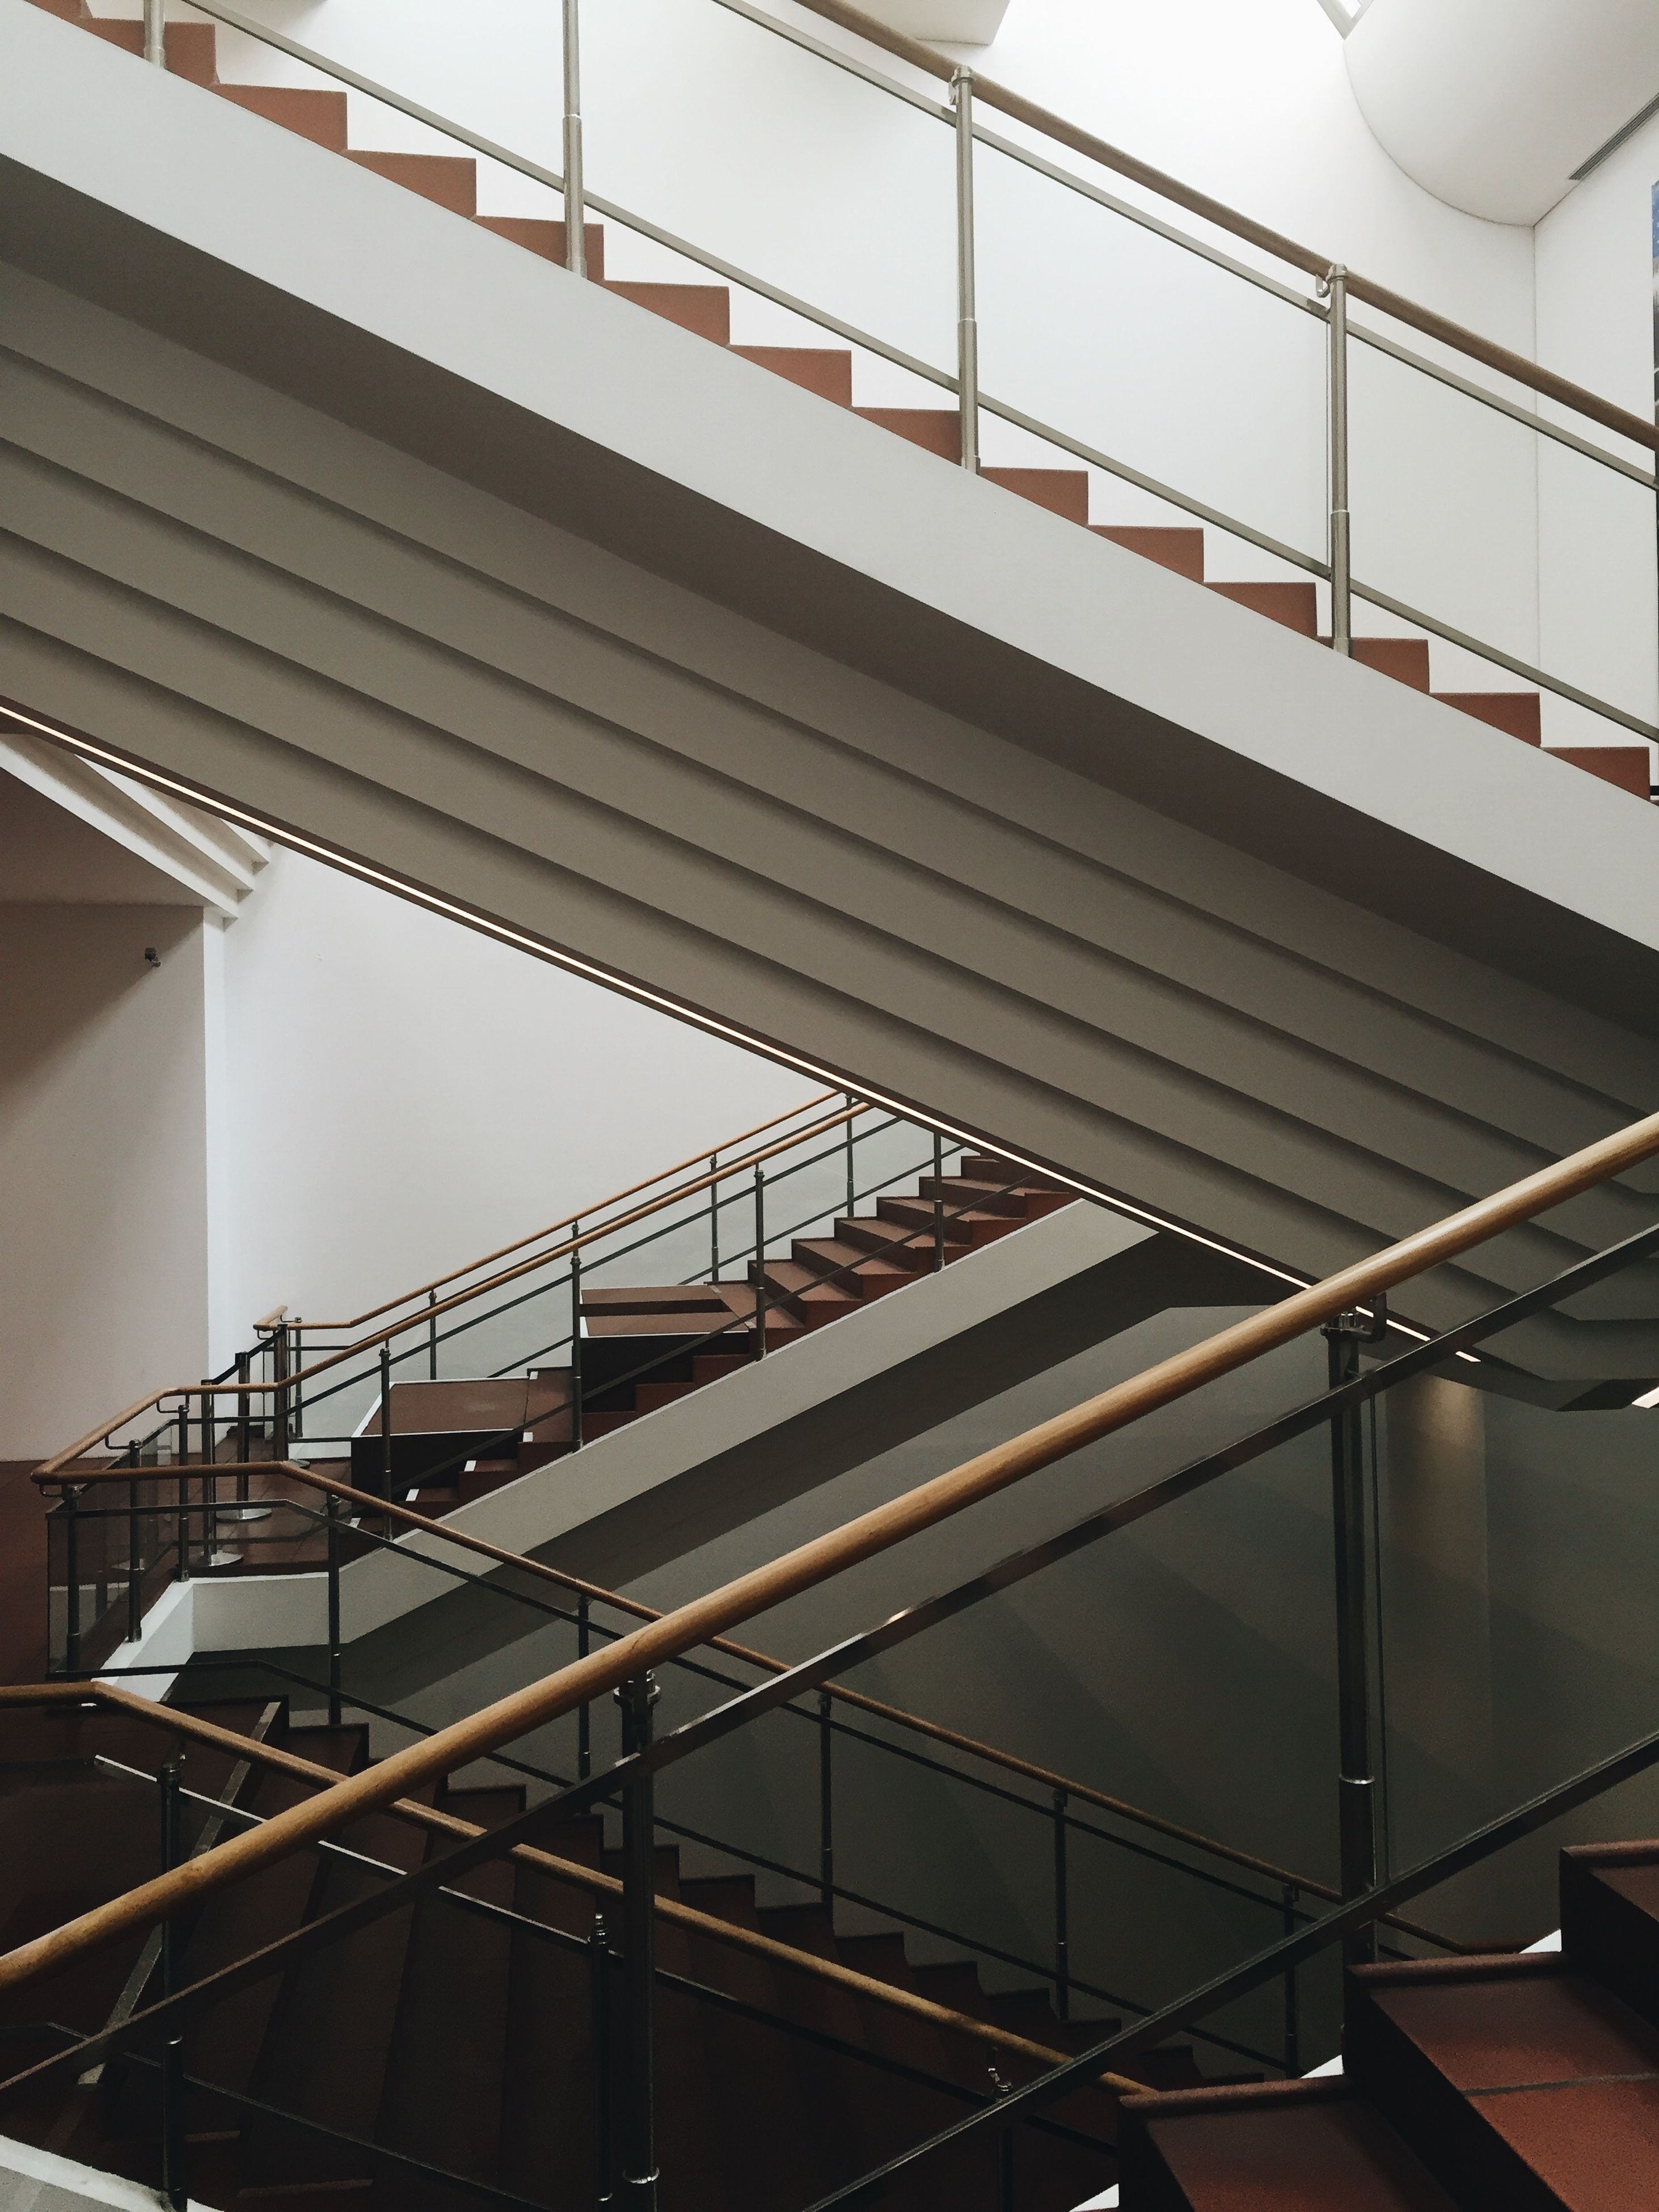 built structure, architecture, staircase, steps and staircases, low angle view, no people, indoors, day